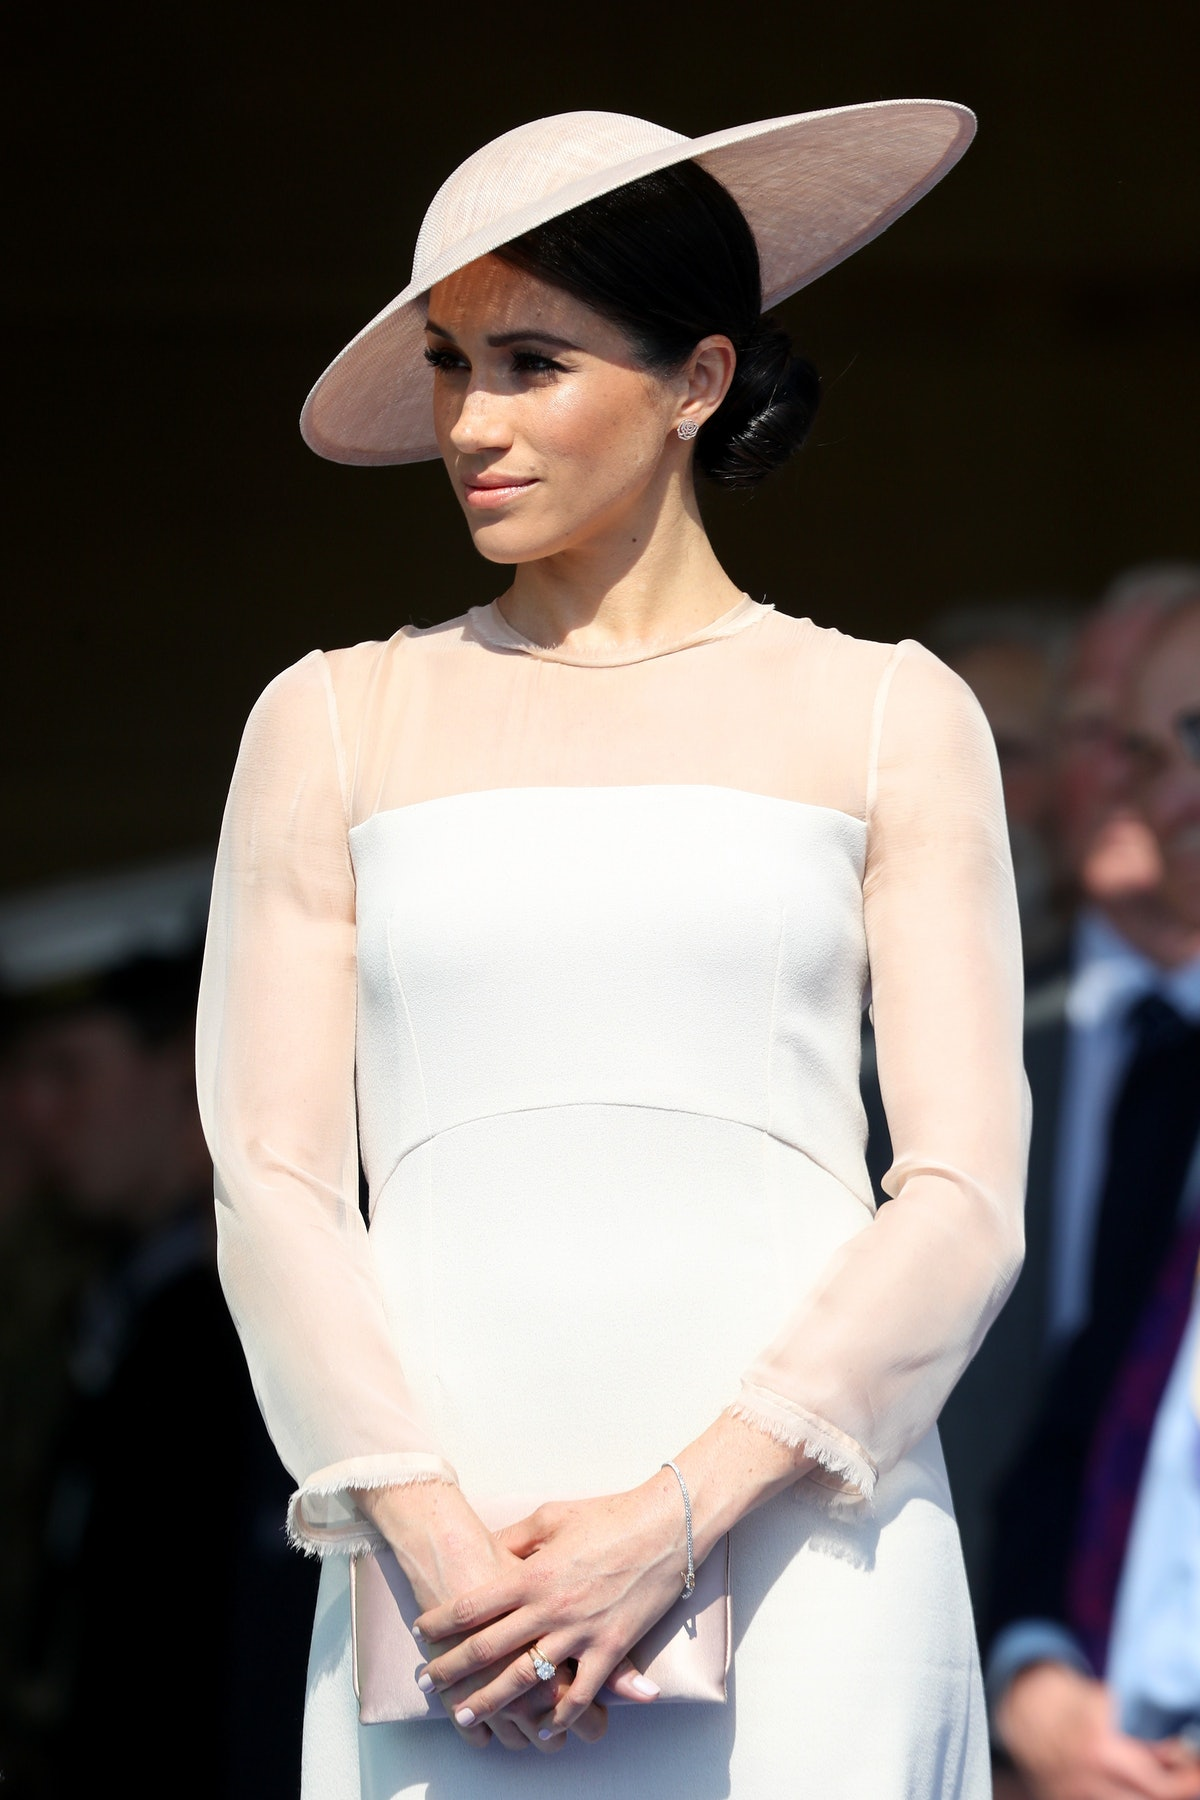 Meghan Markle and Prince Harry Attend The Prince Of Wales' 70th Birthday Patronage Celebration